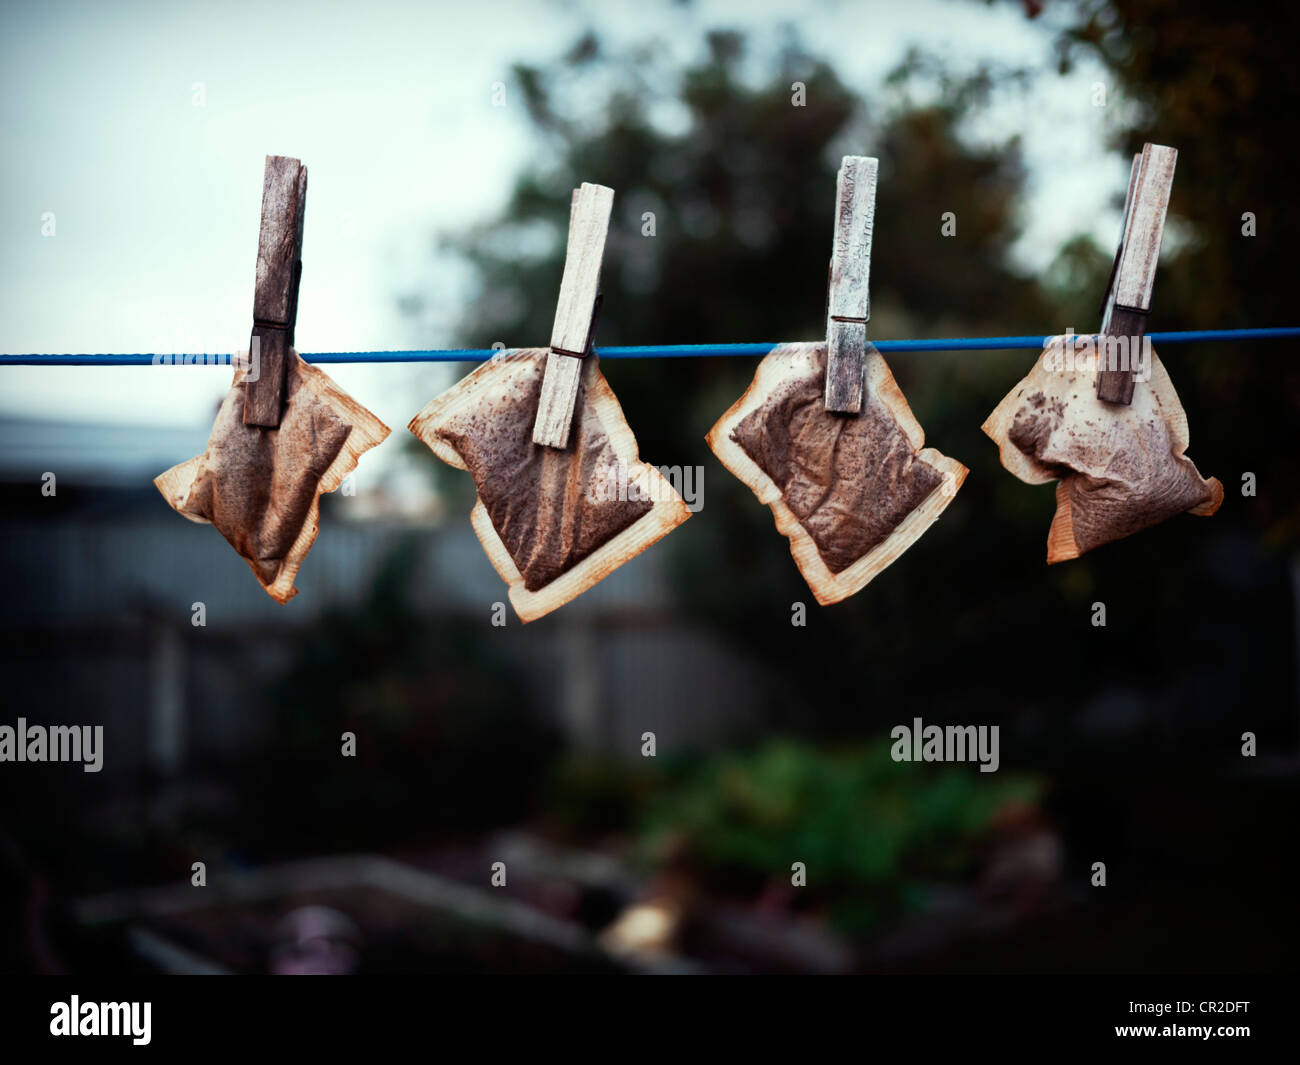 The new economy: drying teabags on washing line for re-use. - Stock Image